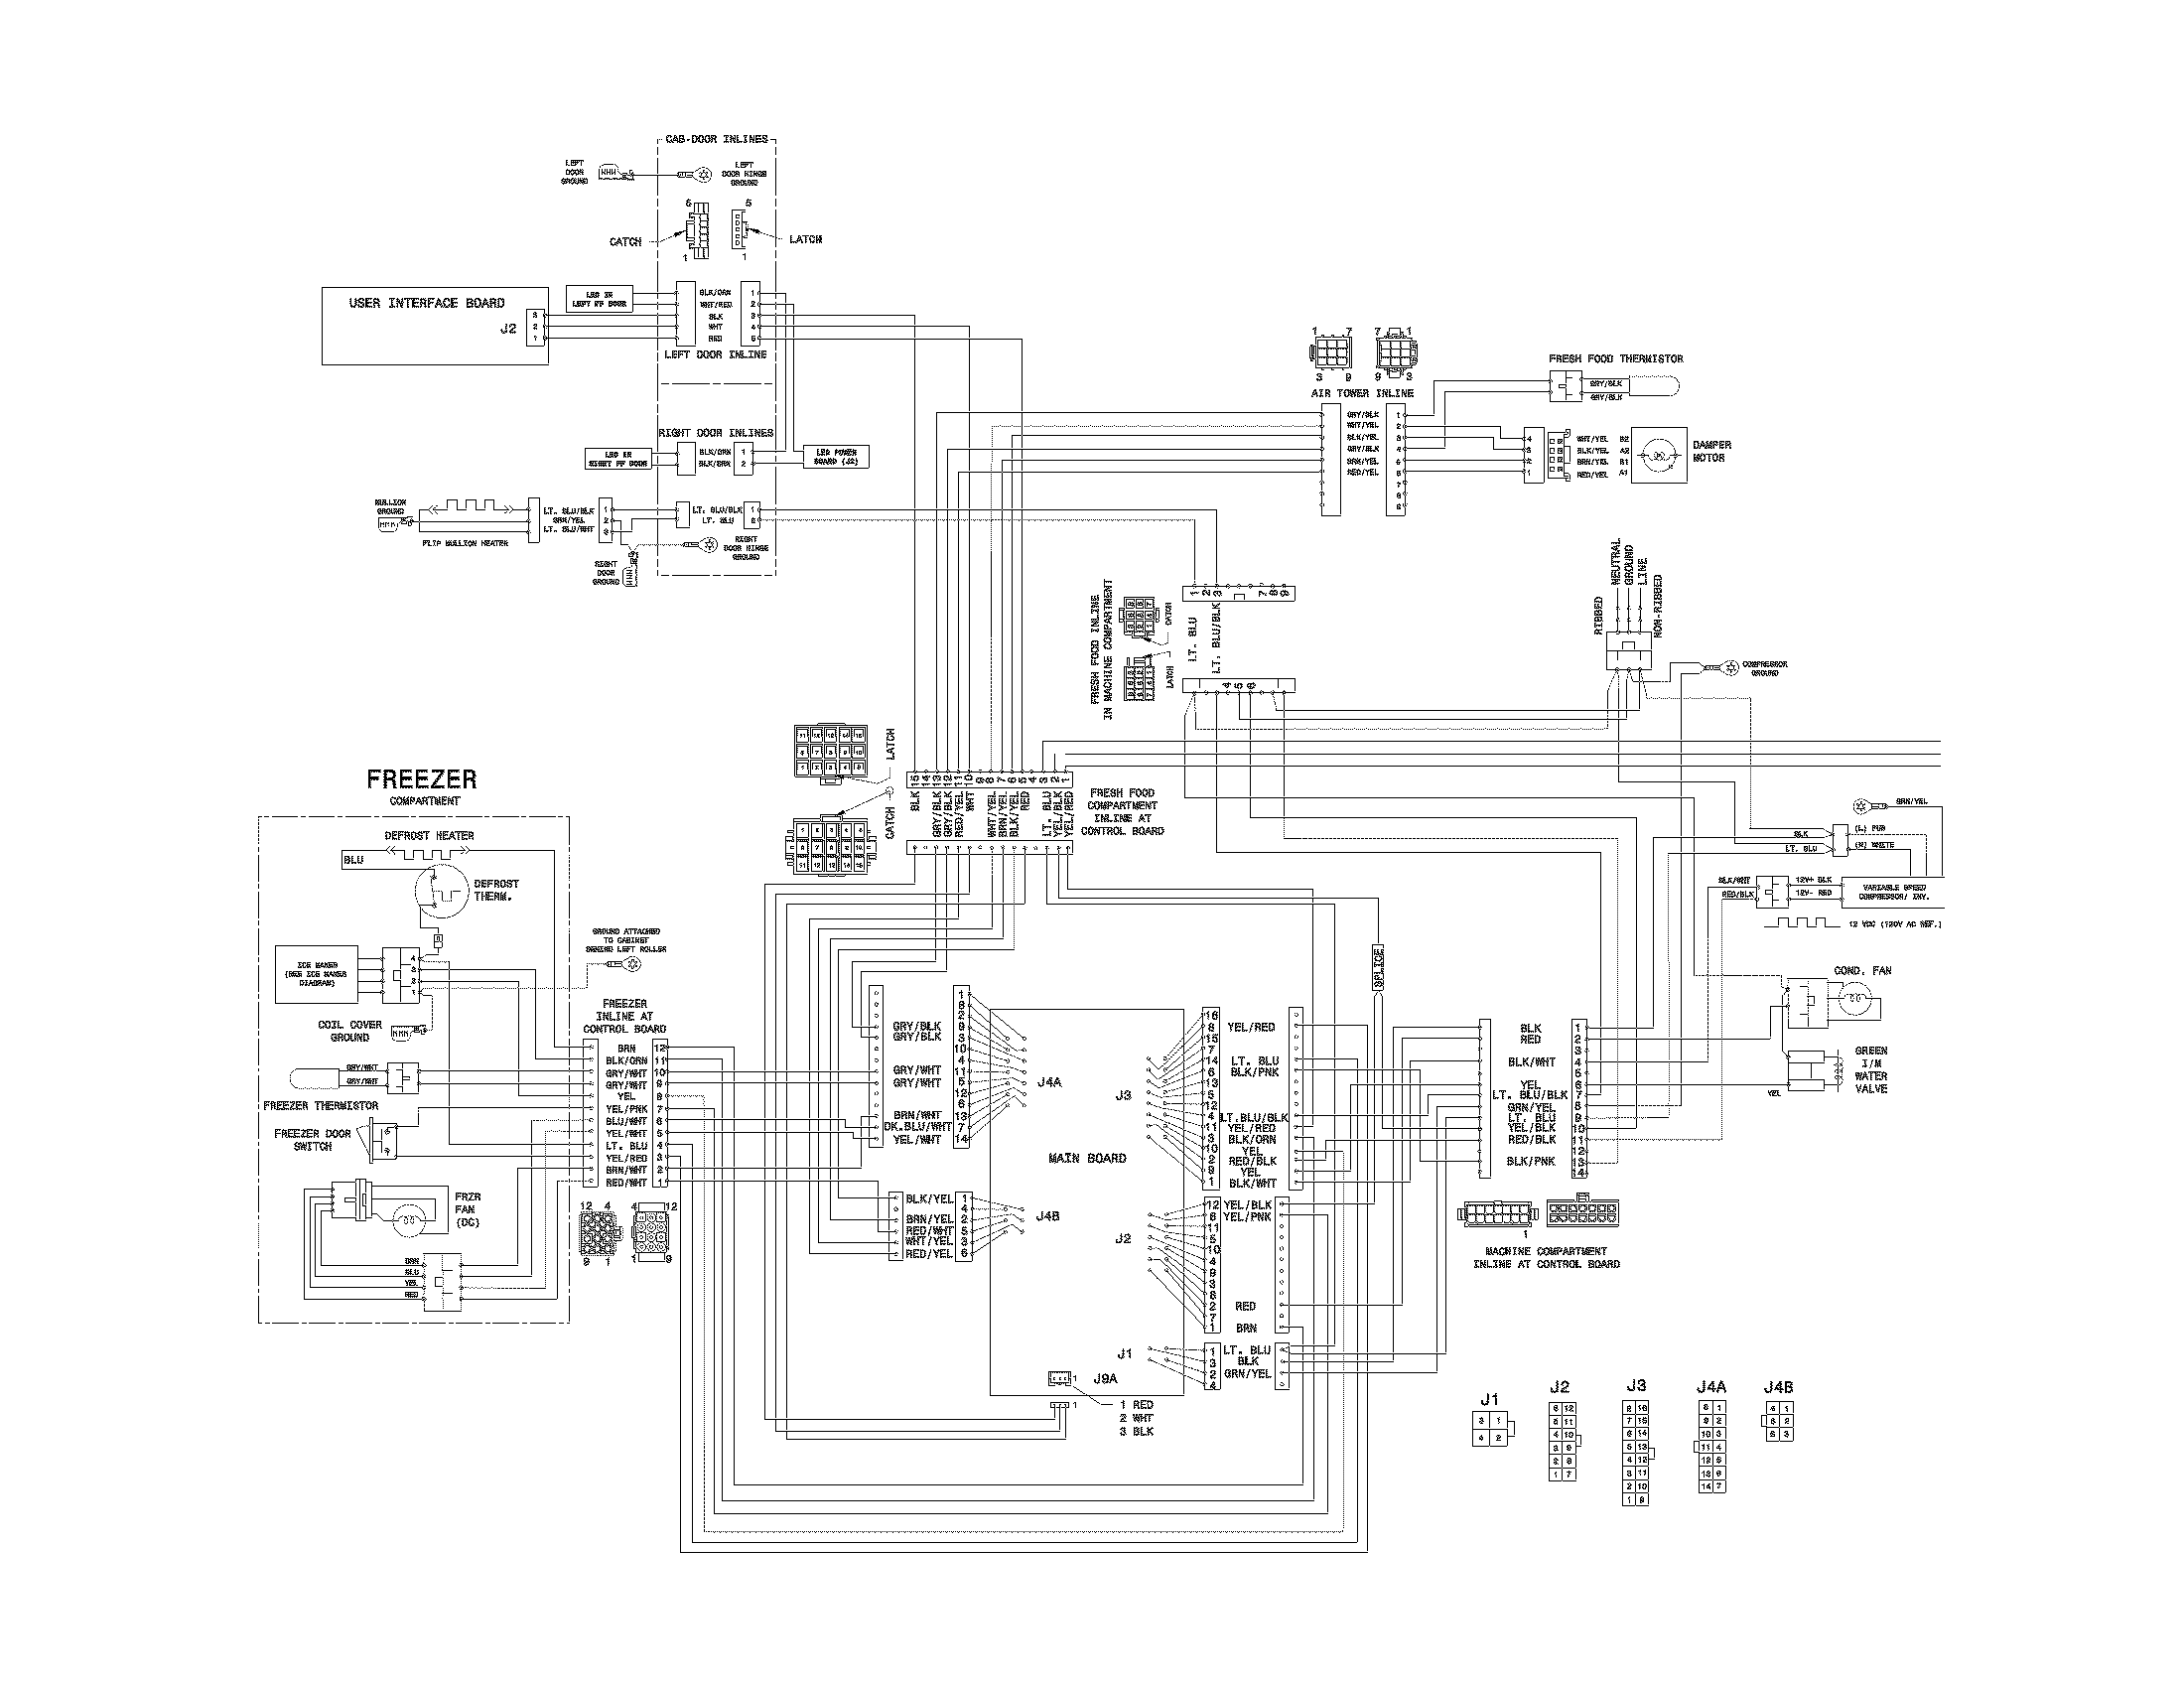 Freezer Wiring Diagram Of Plate Kegerator Diagram Wiring